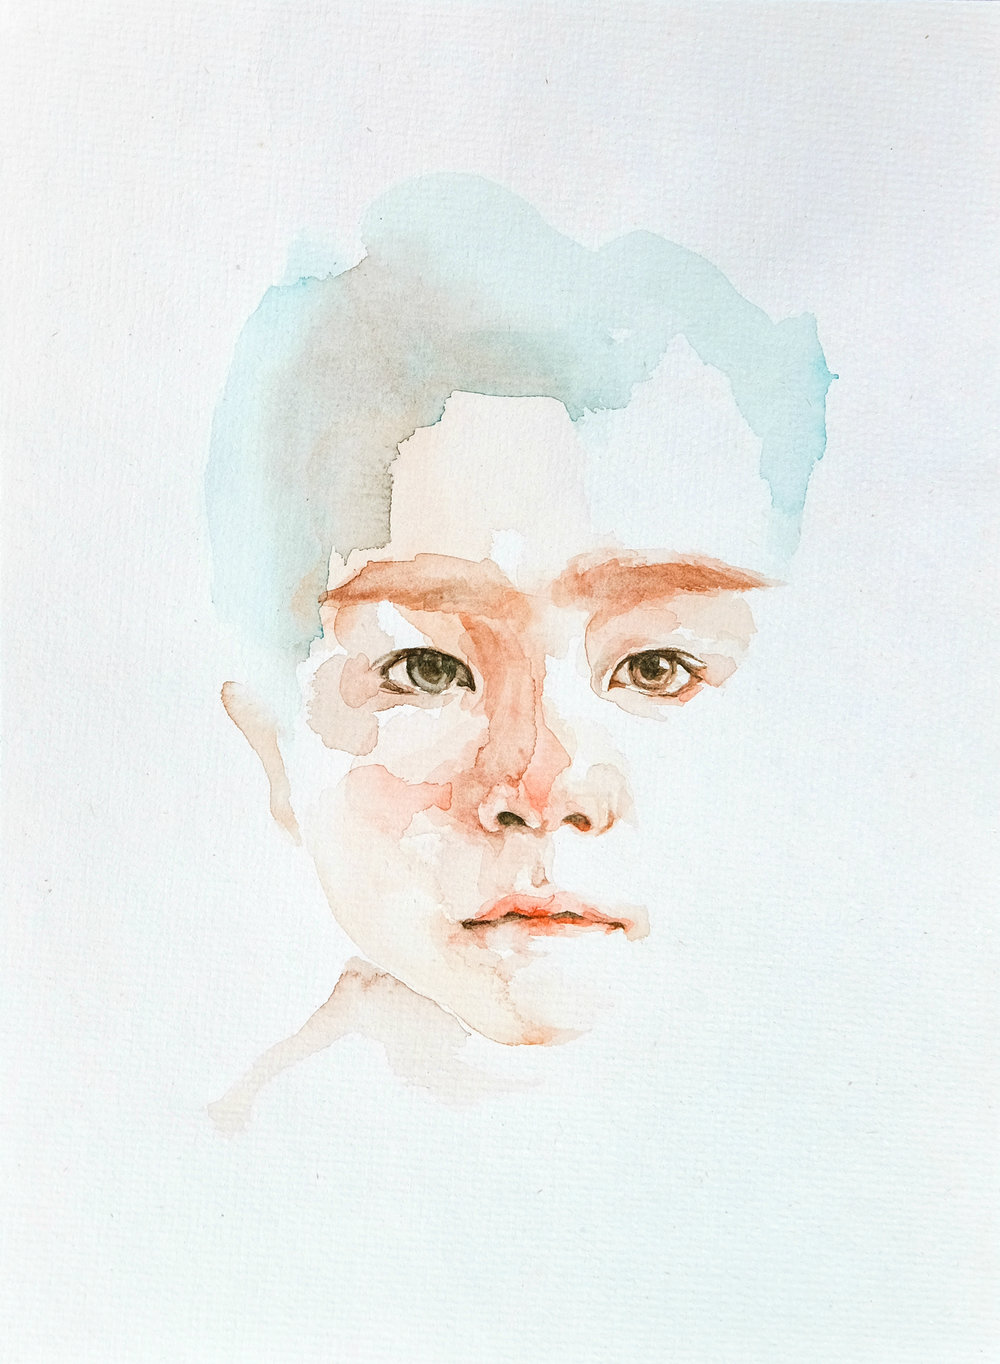 7_Marshmallow_20x27_Watercolor on Paper.jpg